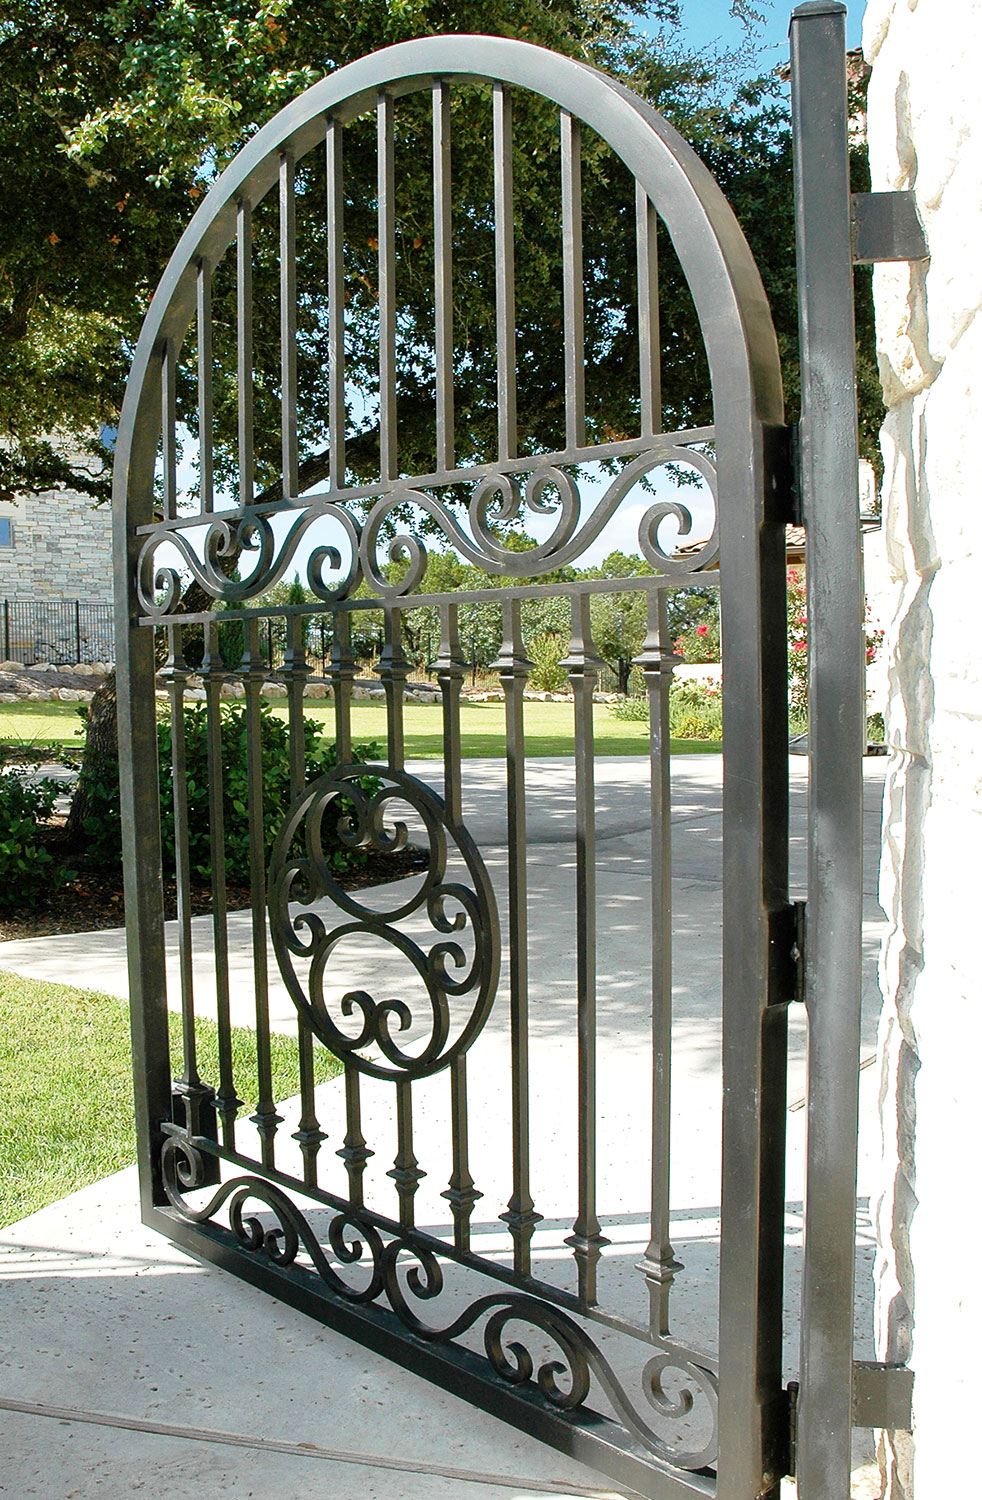 Us 26 0 Metal Gates Garden Gate Wrought Iron Fence In Doors From Home Improvement On Aliexpress 11 Double Singles Day